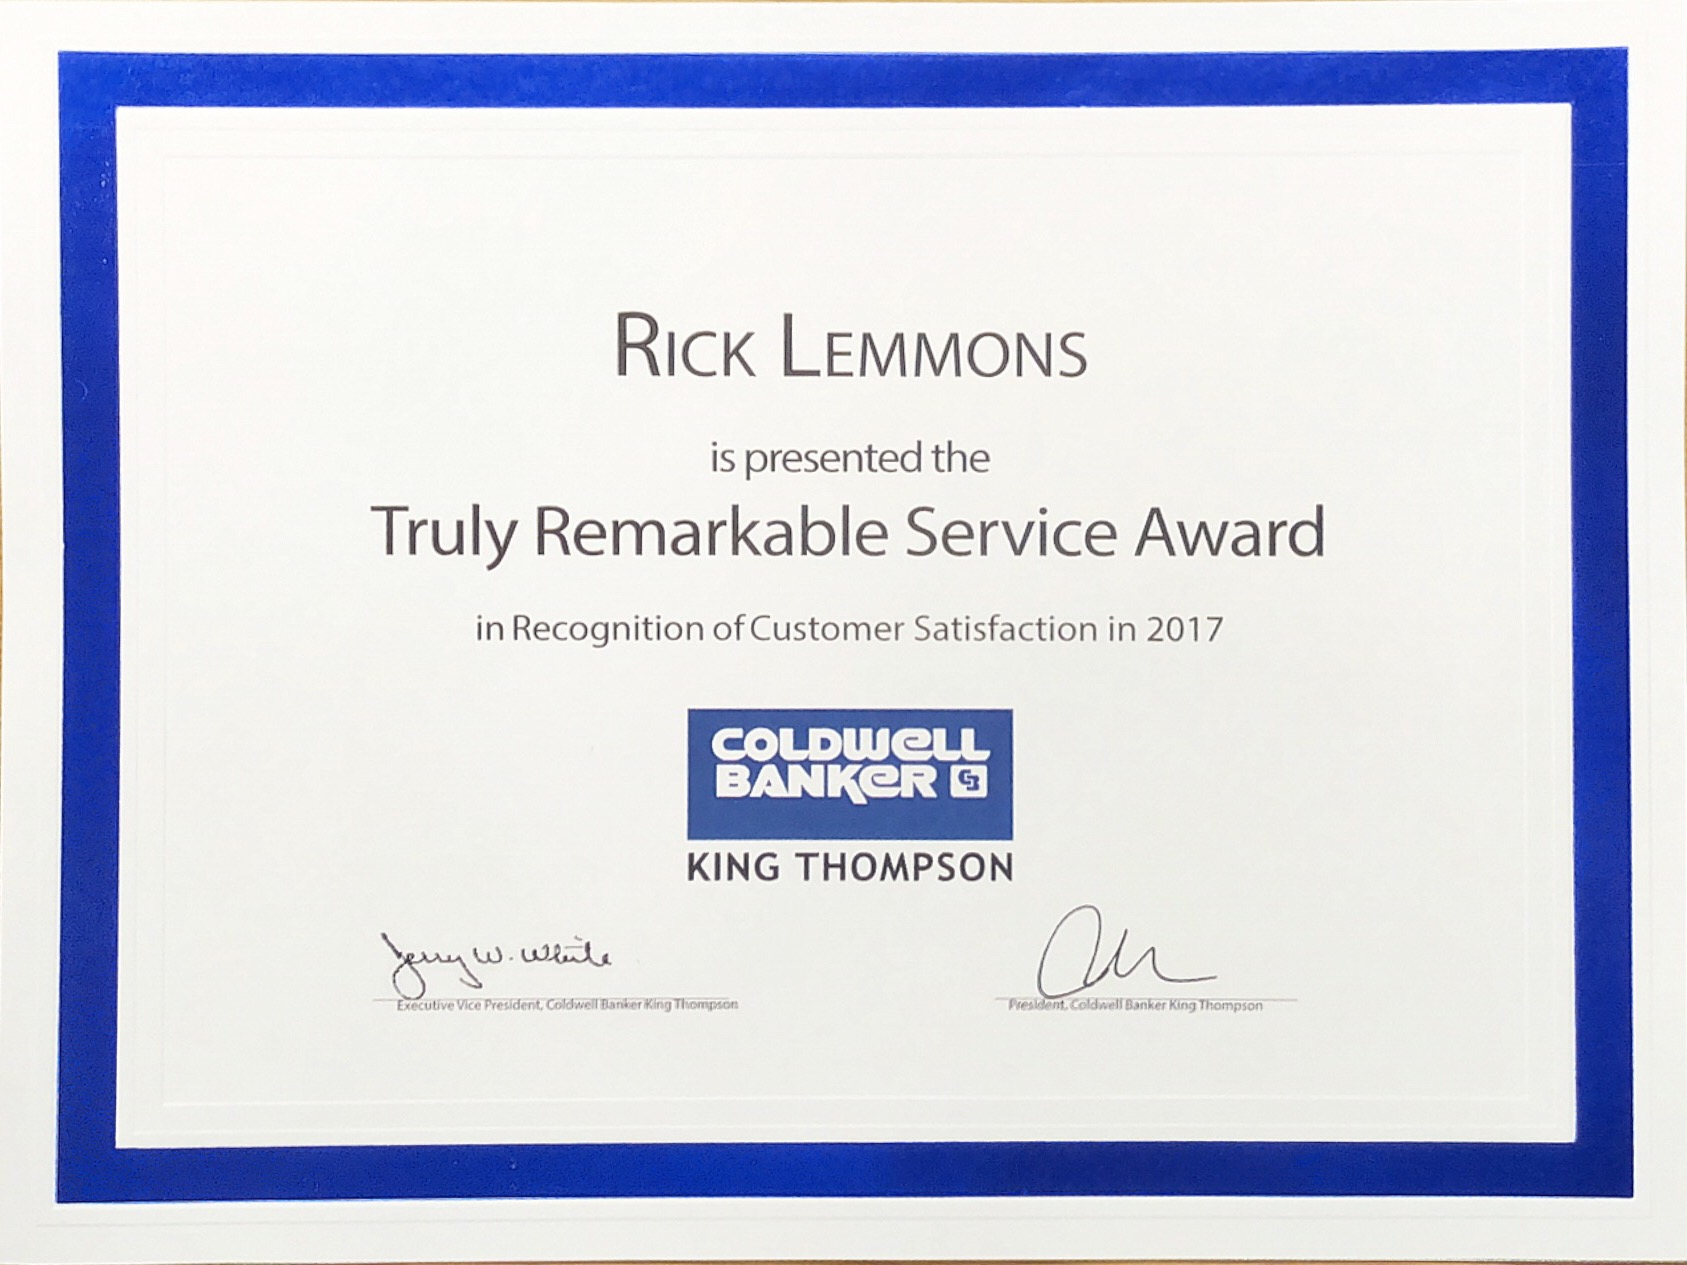 2017 Truly Remarkable Service